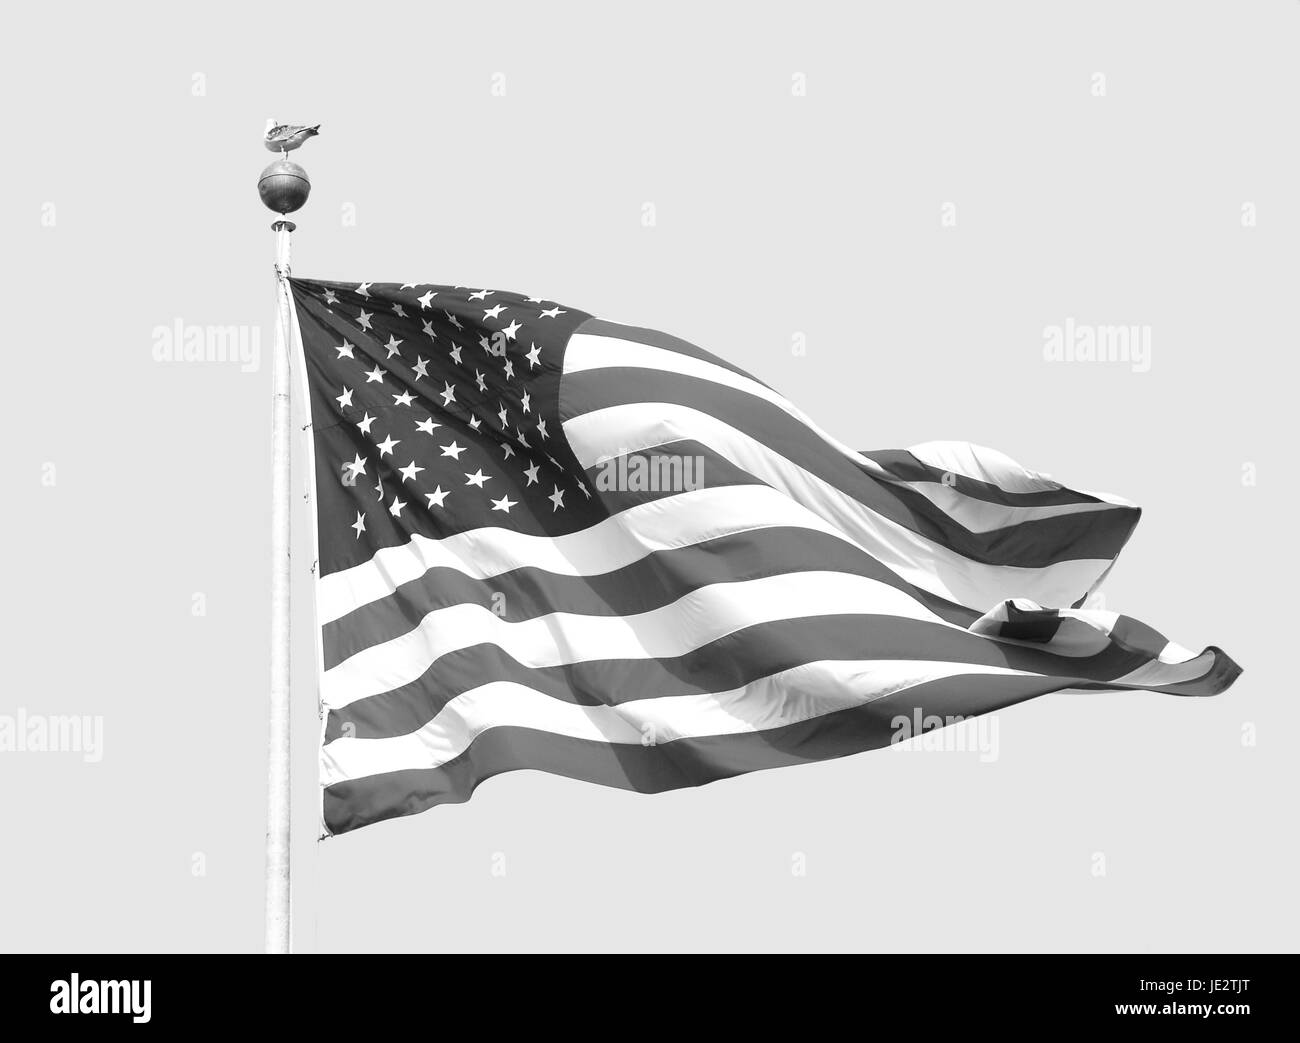 The American flag - the Stars and Stripes - flies on a sunny day against a clear sky. A seagull stands nonchalantly - Stock Image